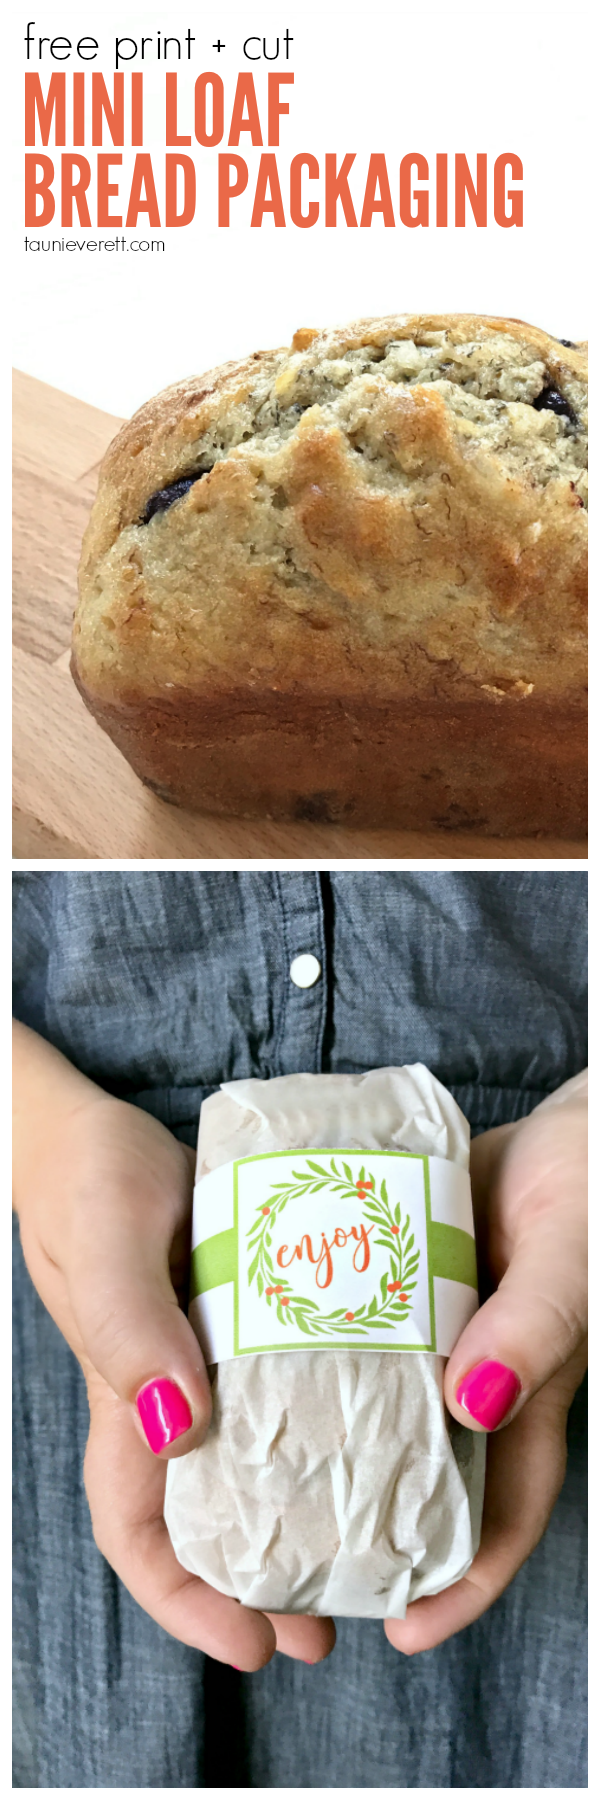 Free print and cut mini loaf bread packaging + coconut chocolate banana bread.